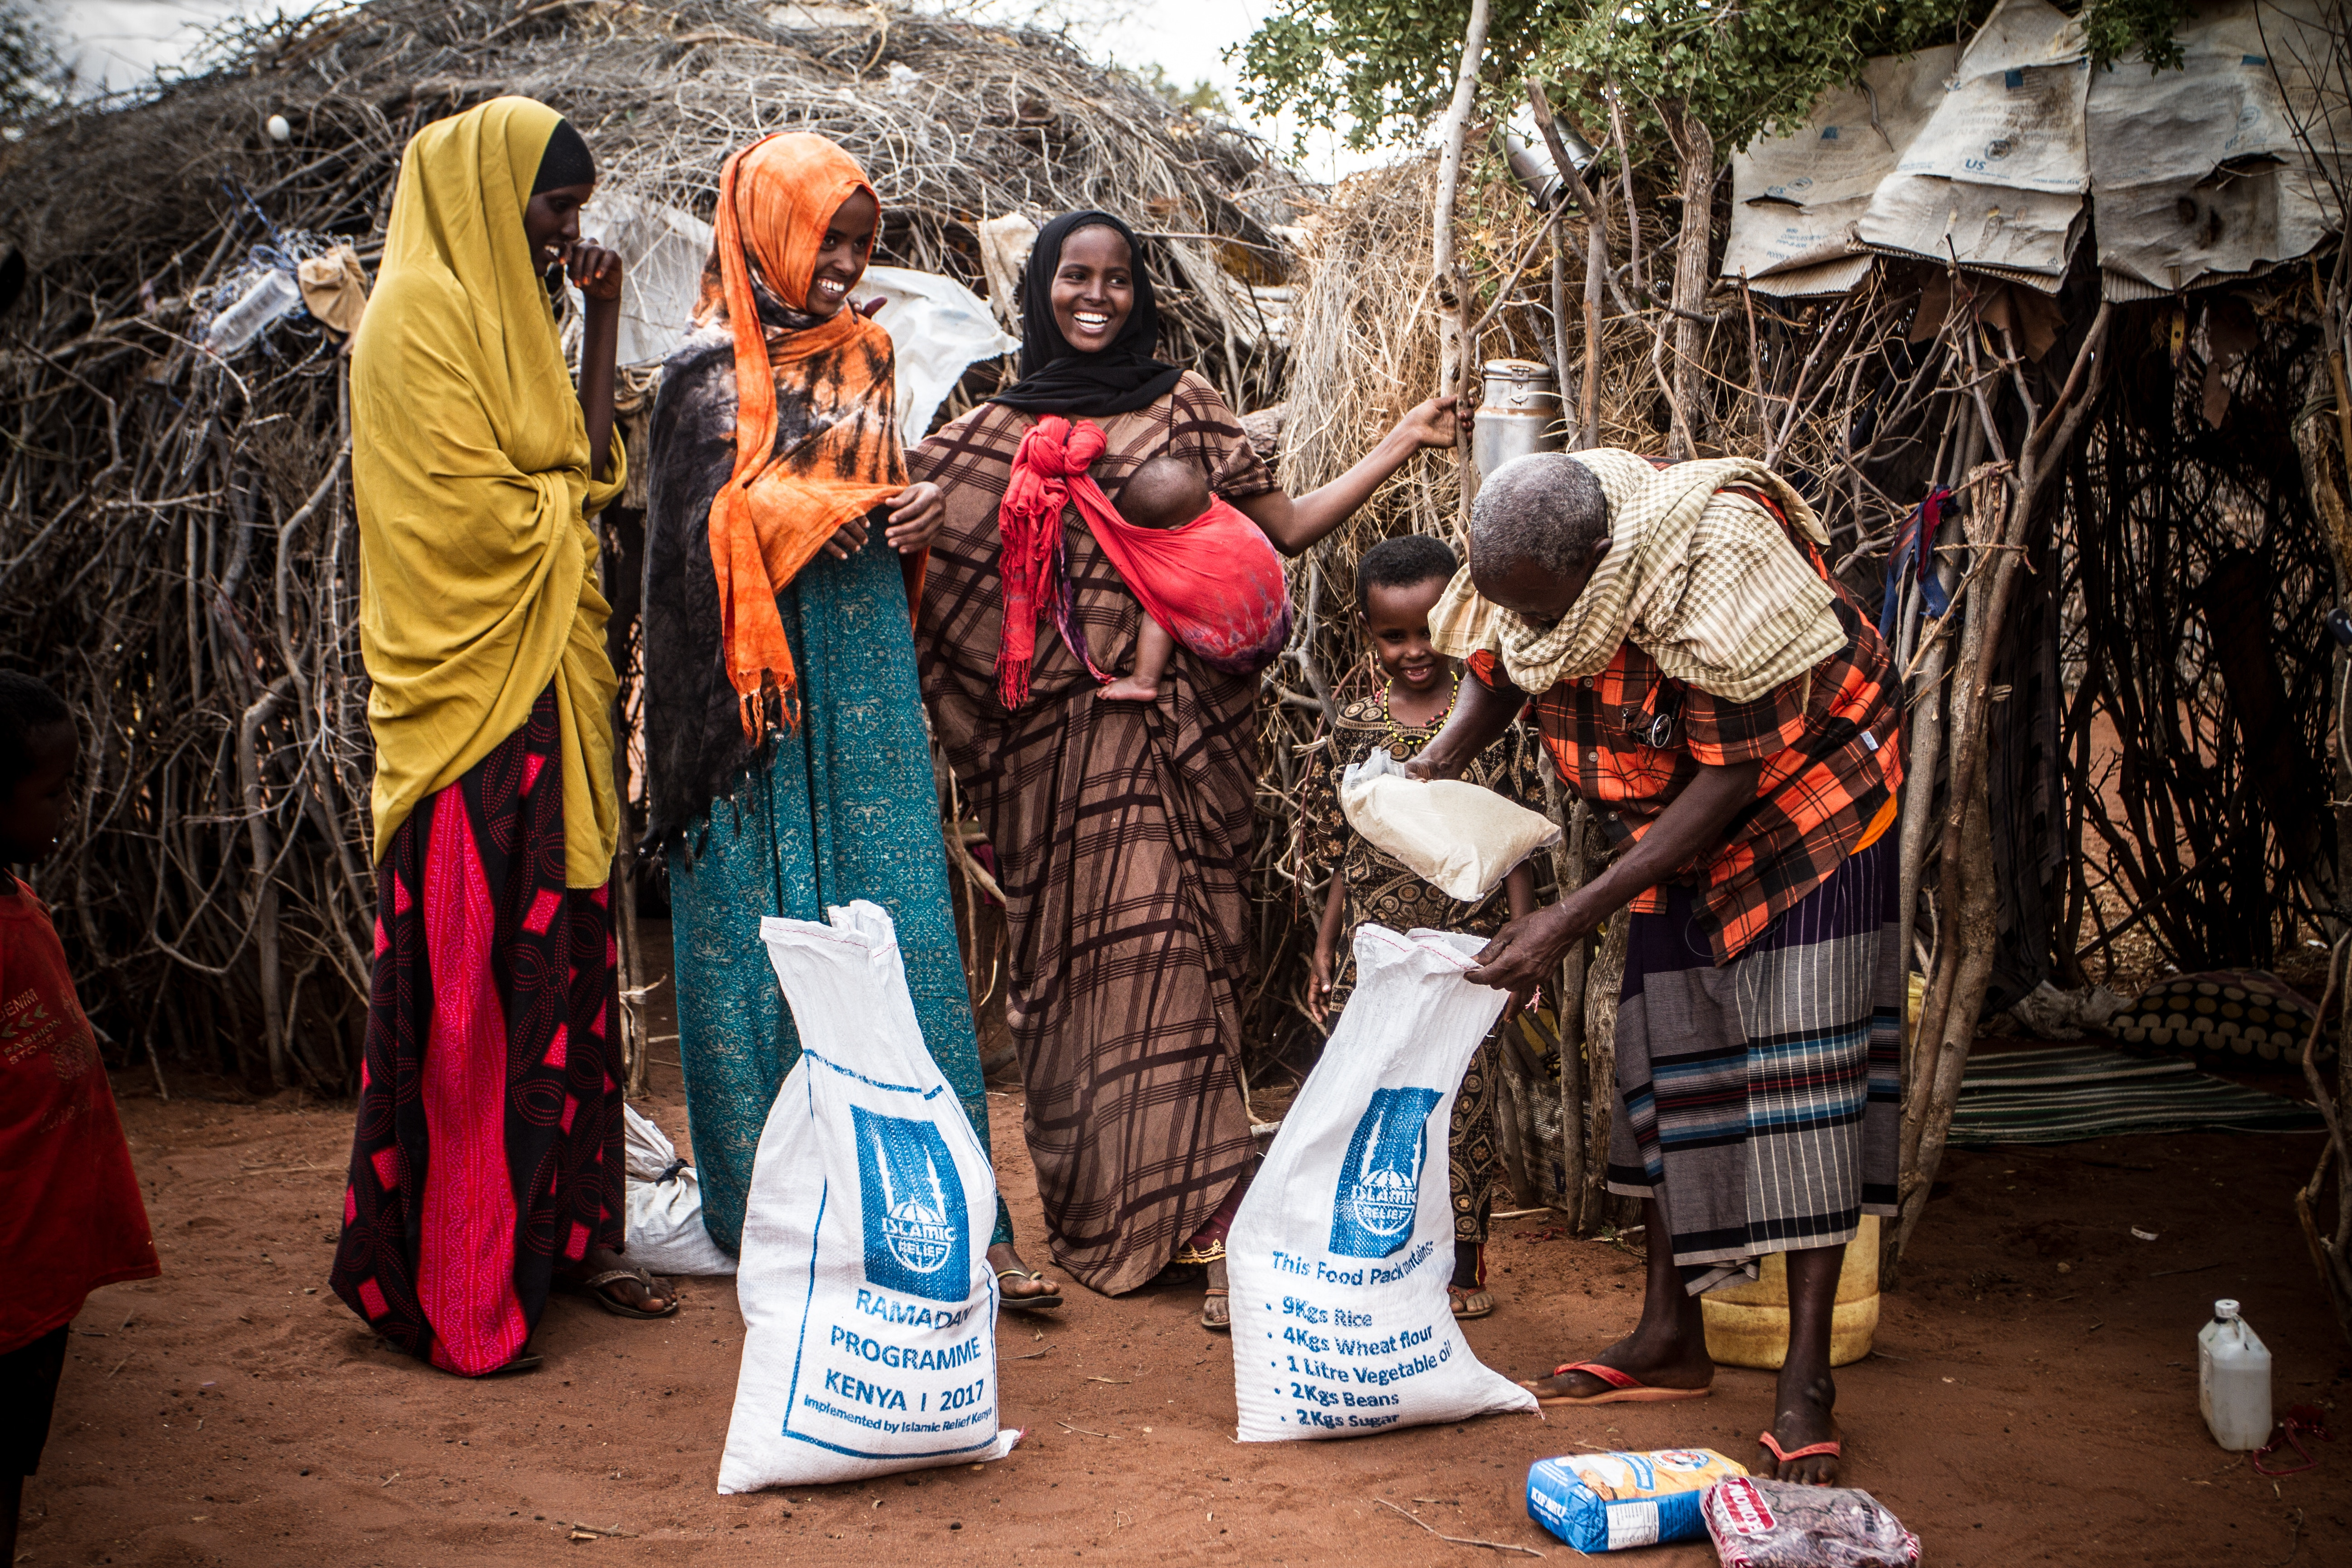 People in Kenya receiving food